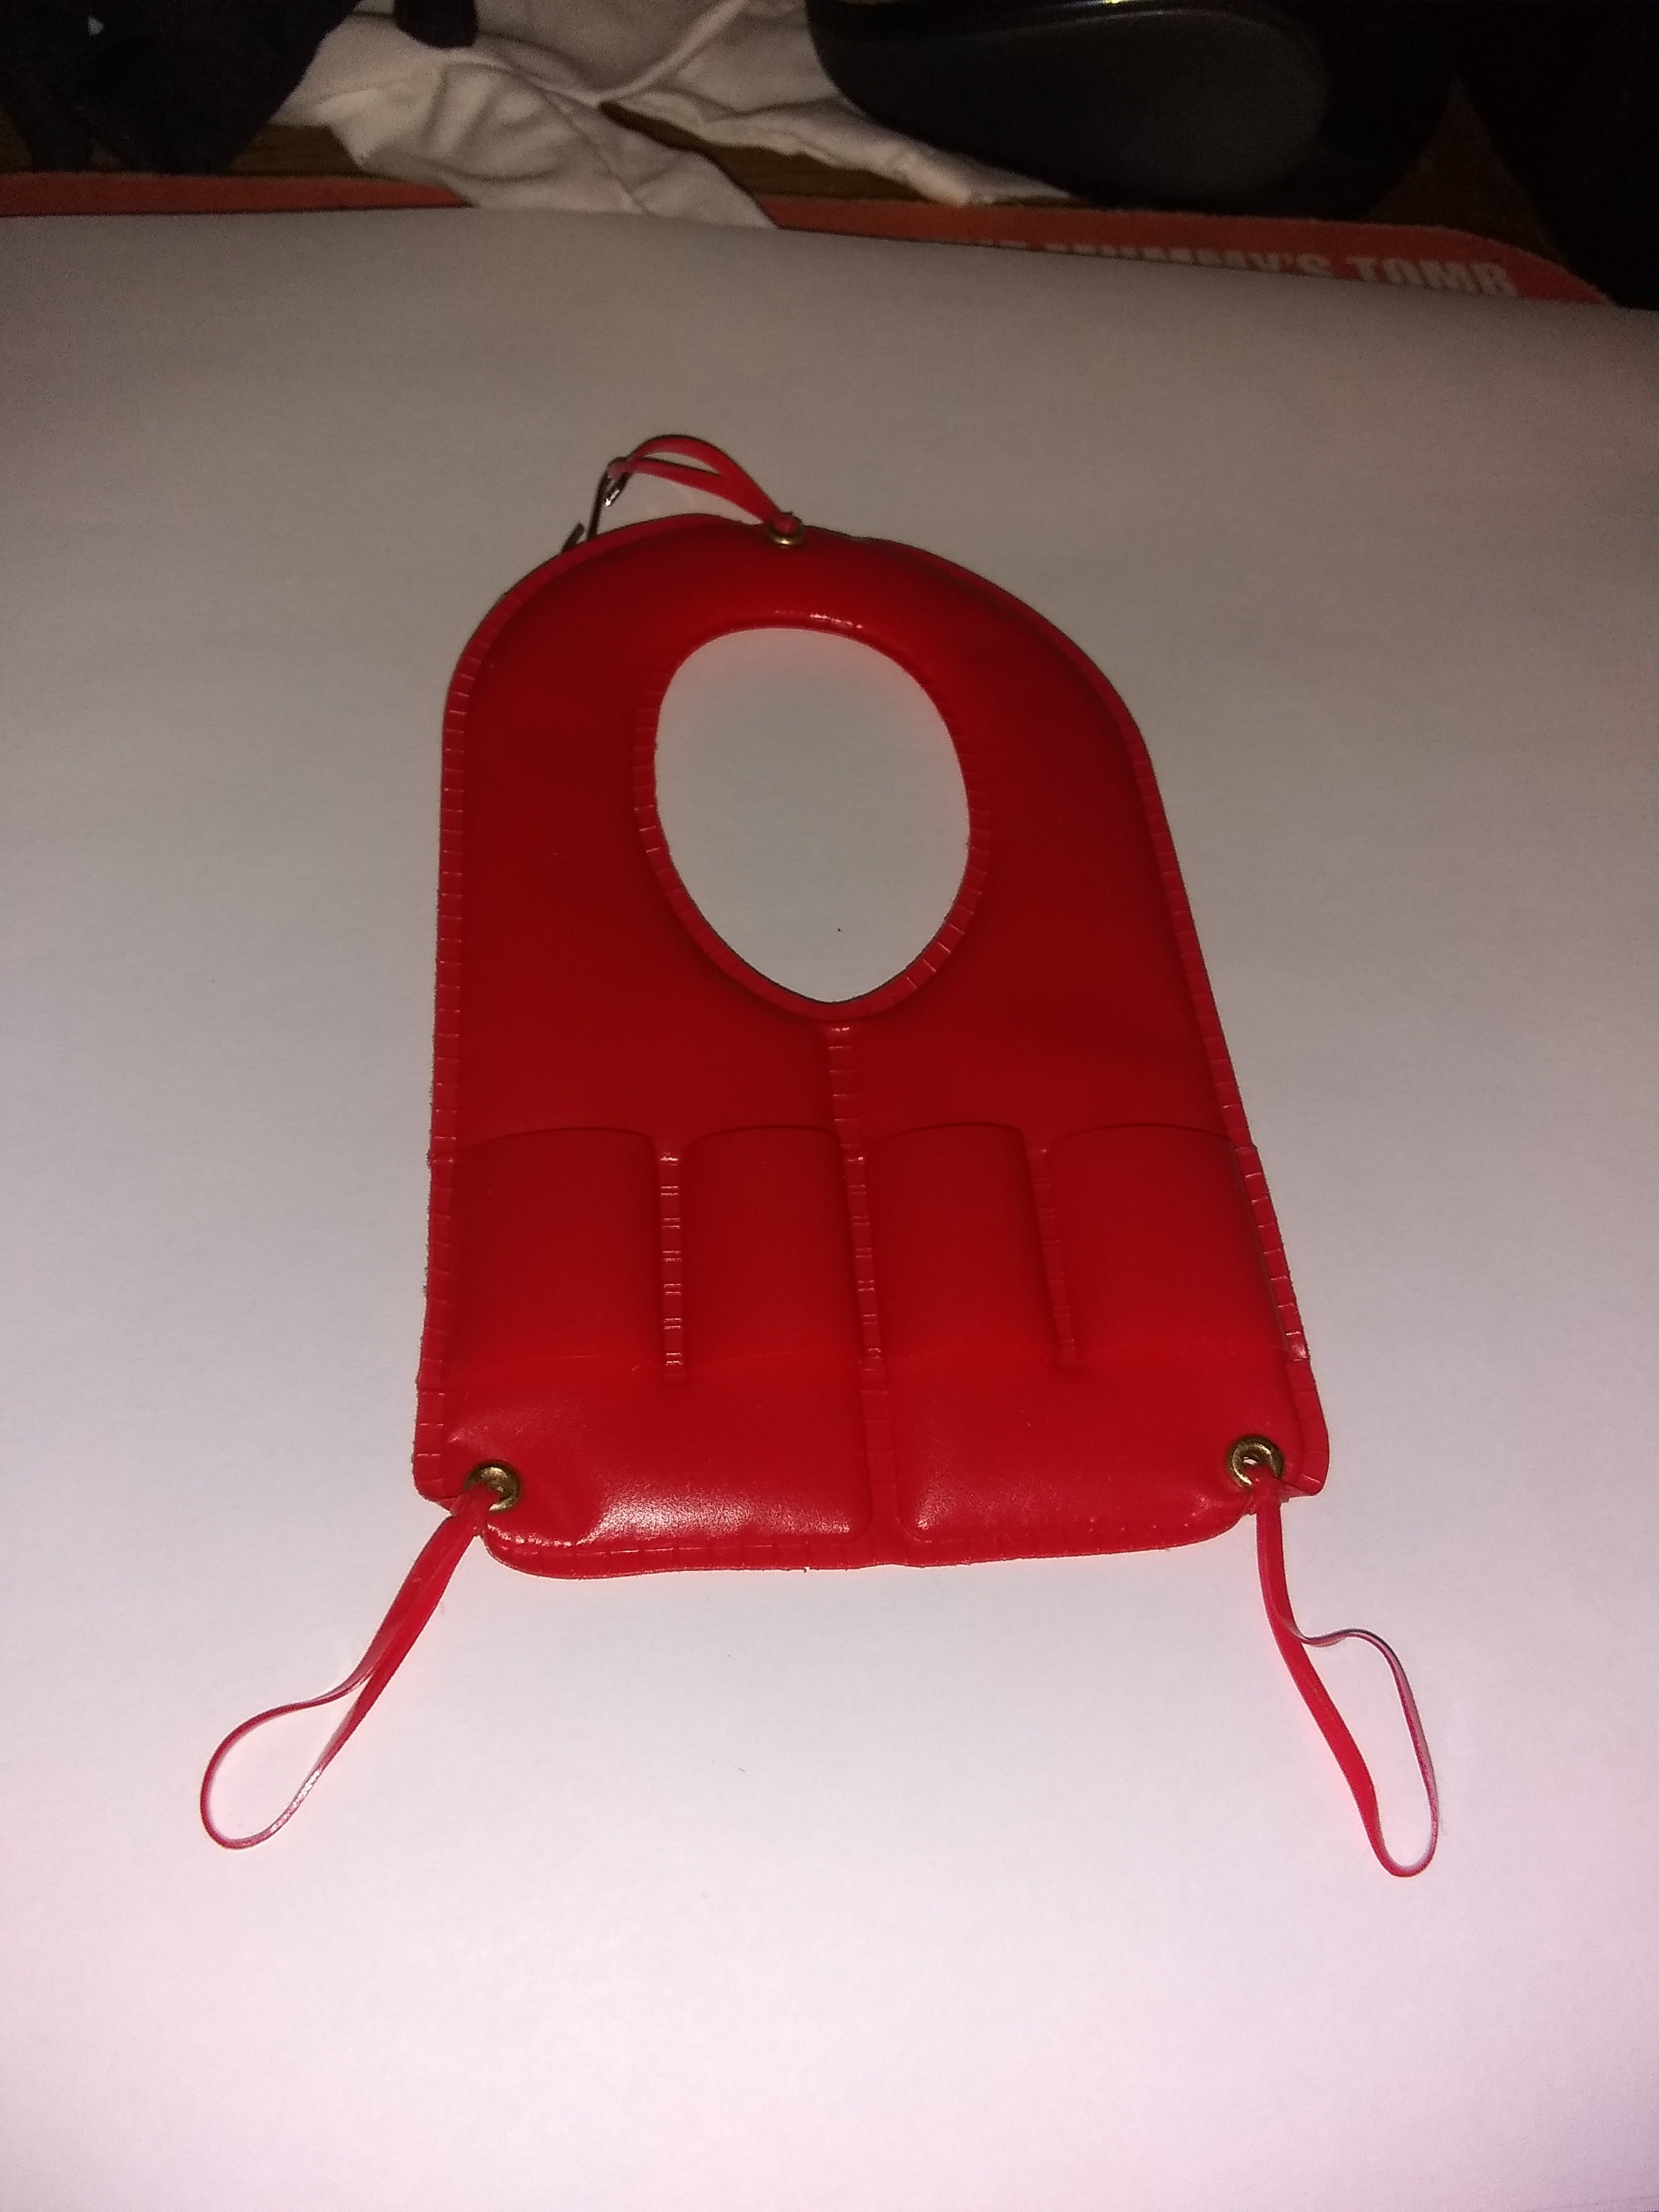 C140 3rd SON Book Alternate color red life vest new production